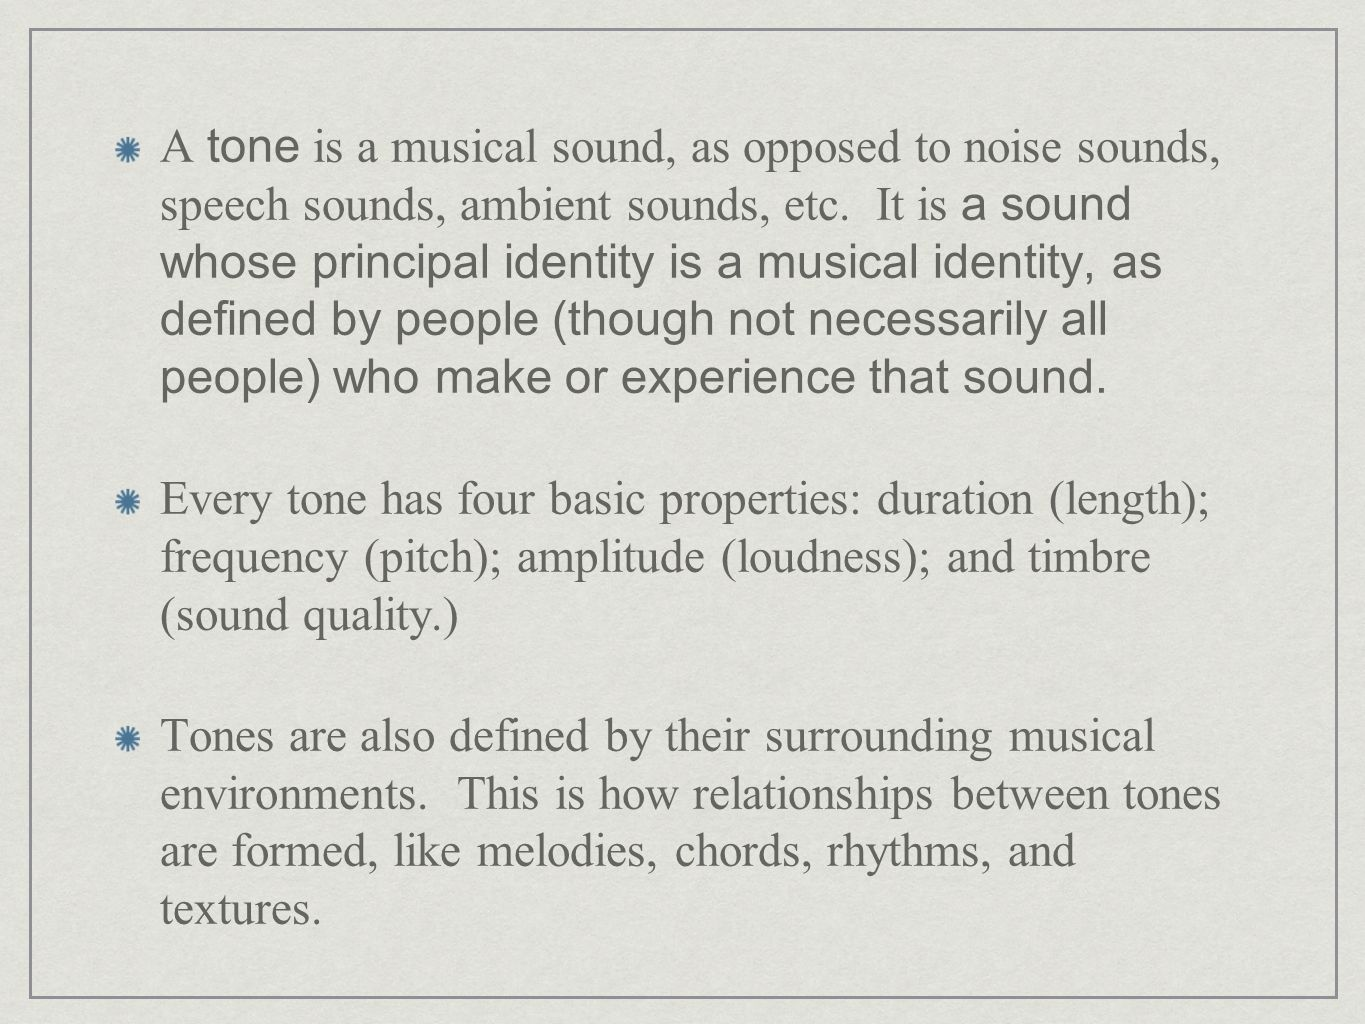 A tone is a musical sound, as opposed to noise sounds, speech sounds, ambient sounds, etc. It is a sound whose principal identity is a musical identit